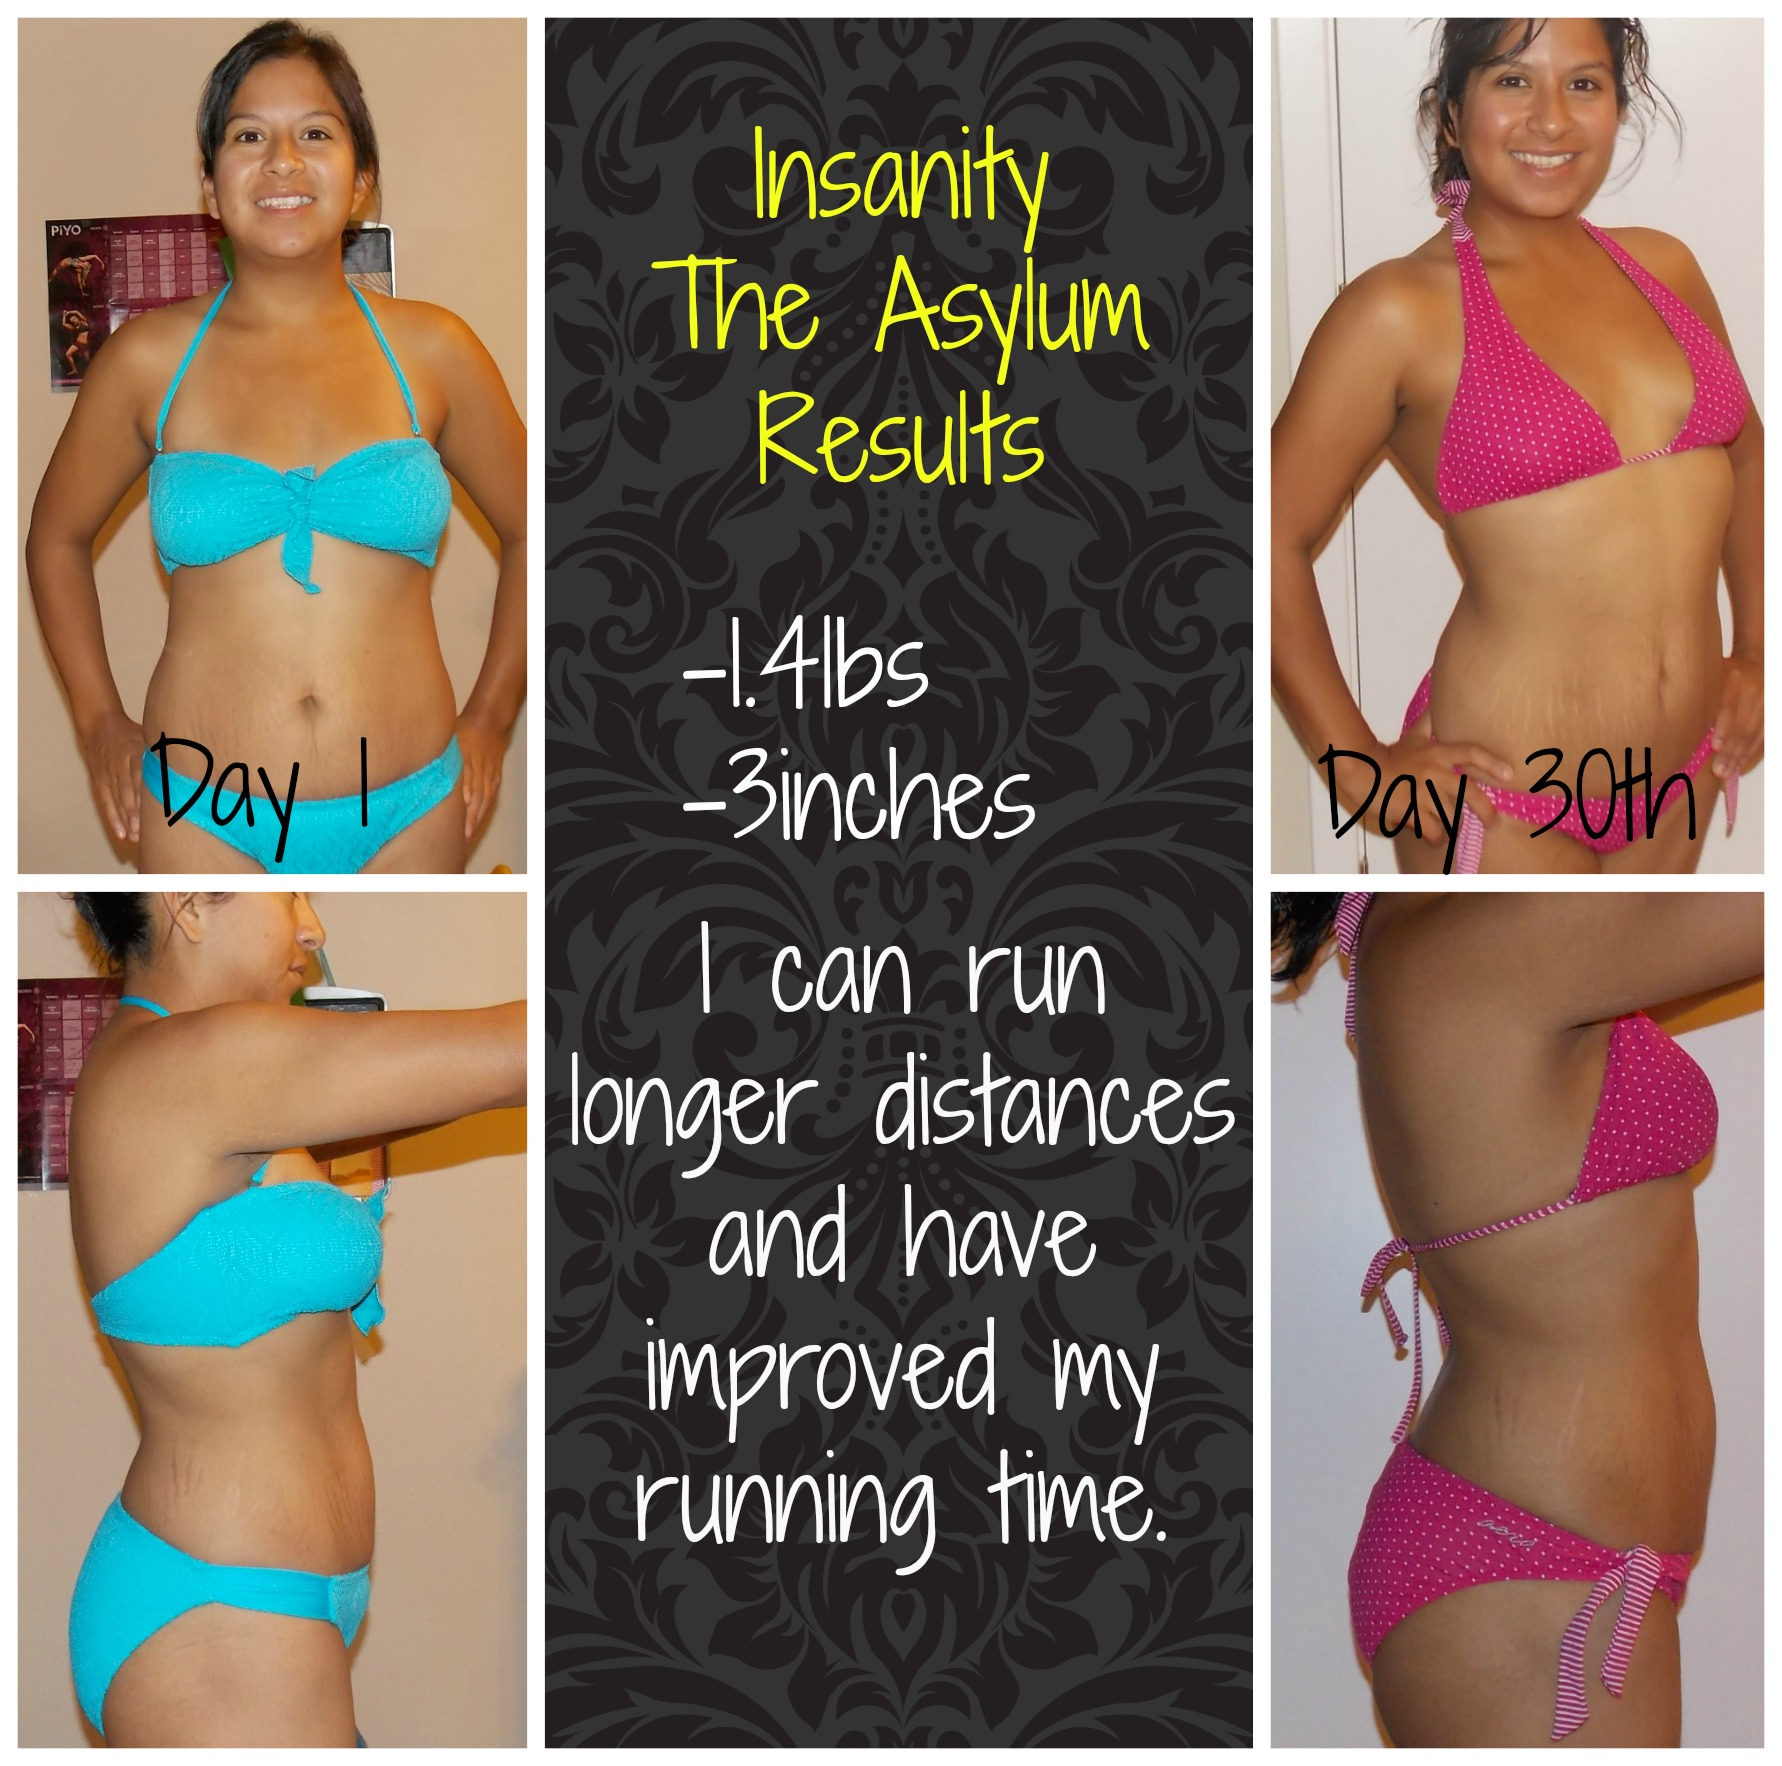 Insanity: The Asylum Results | Getting Fit with Nemisis